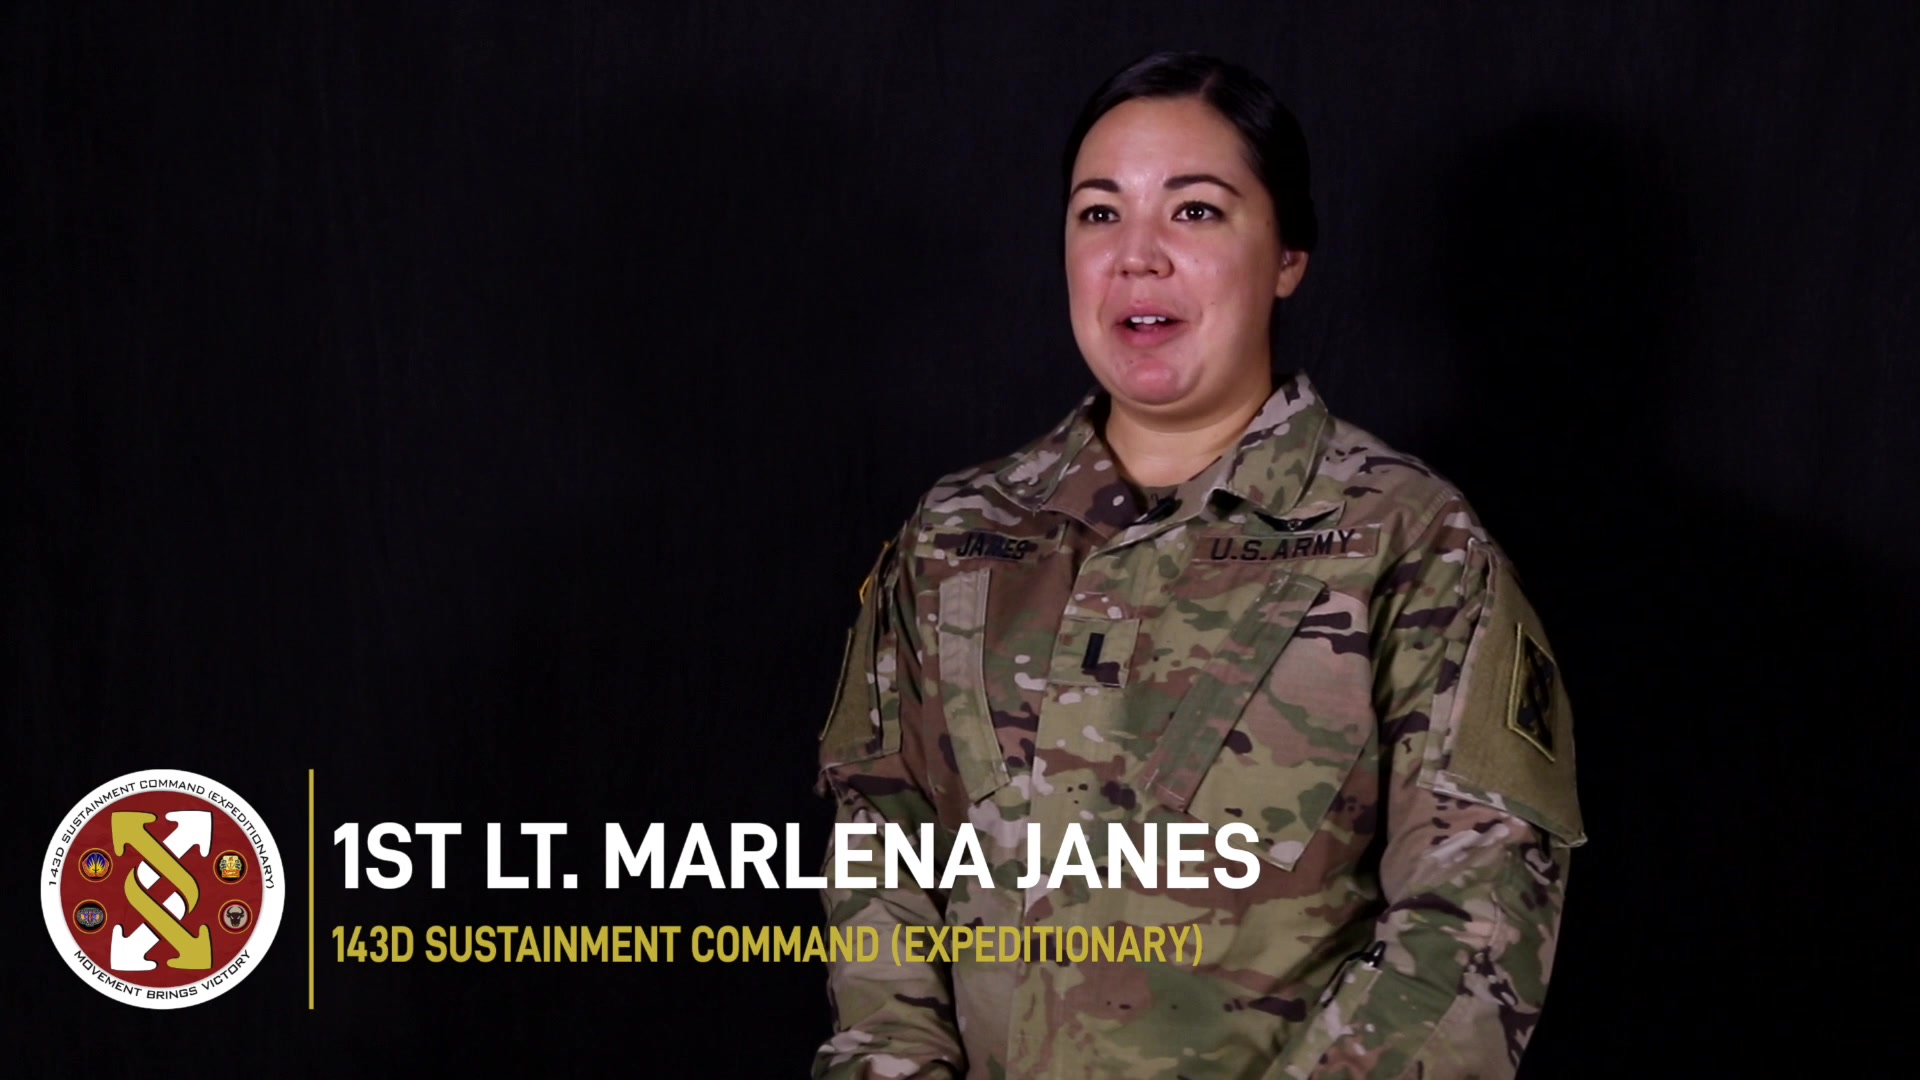 1st Lt. Marlena Janes of the 143d Sustainment Command (Expeditionary) in Orlando, Fla., shared how her work environment changed during the COVID-19 pandemic. (U.S. Army video by Spc. Leon Orange)